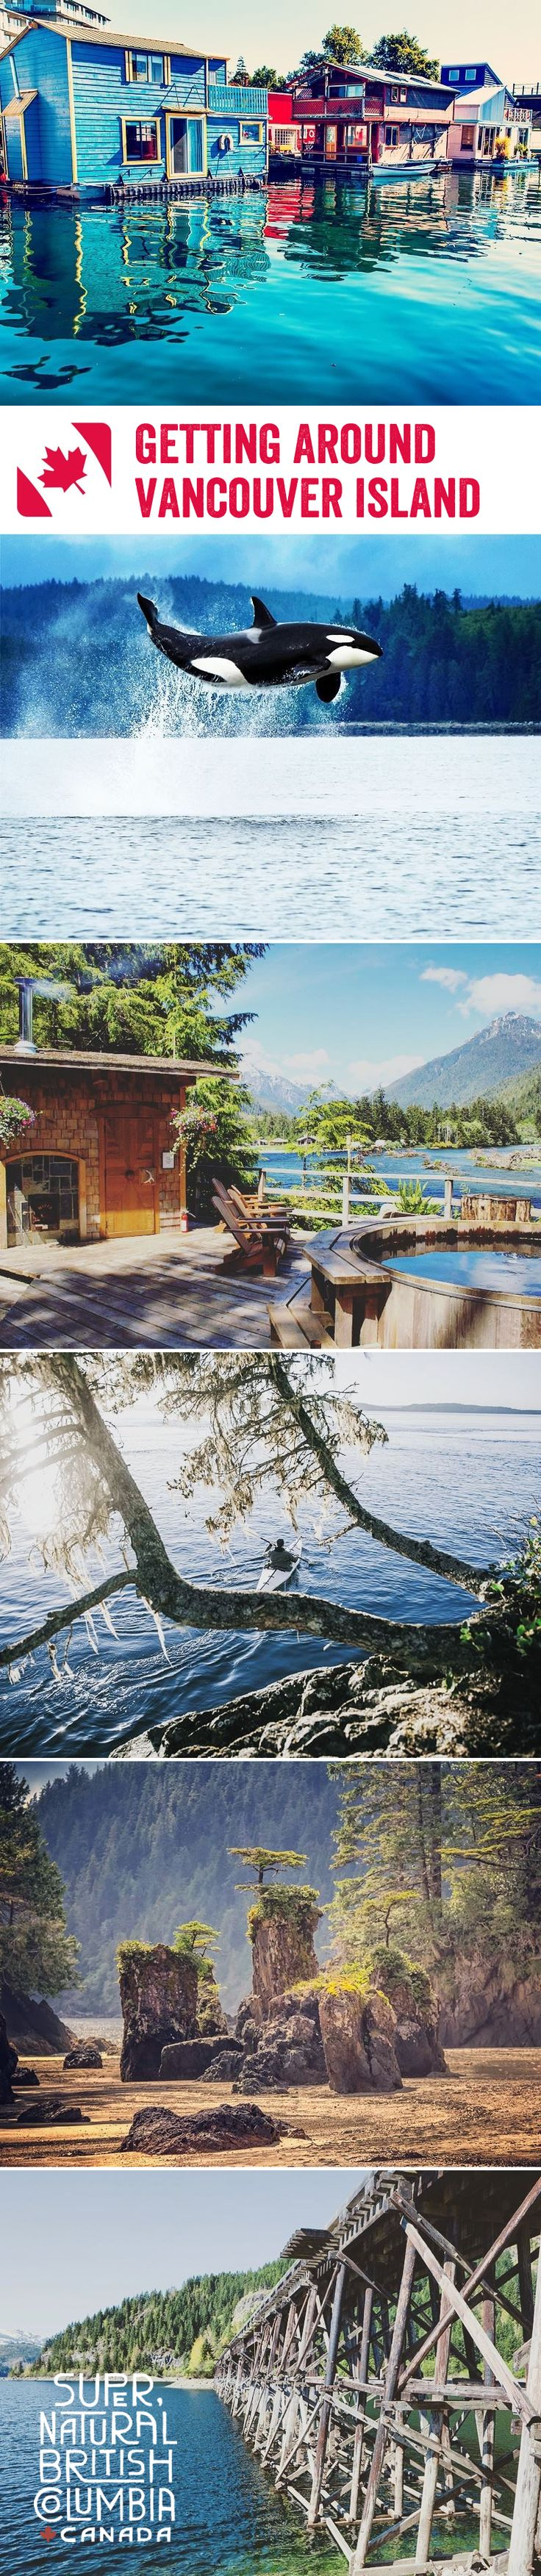 From thrilling water sports and fun camping, to seaplane tours and afternoon tea, there's plenty to do on Vancouver Island